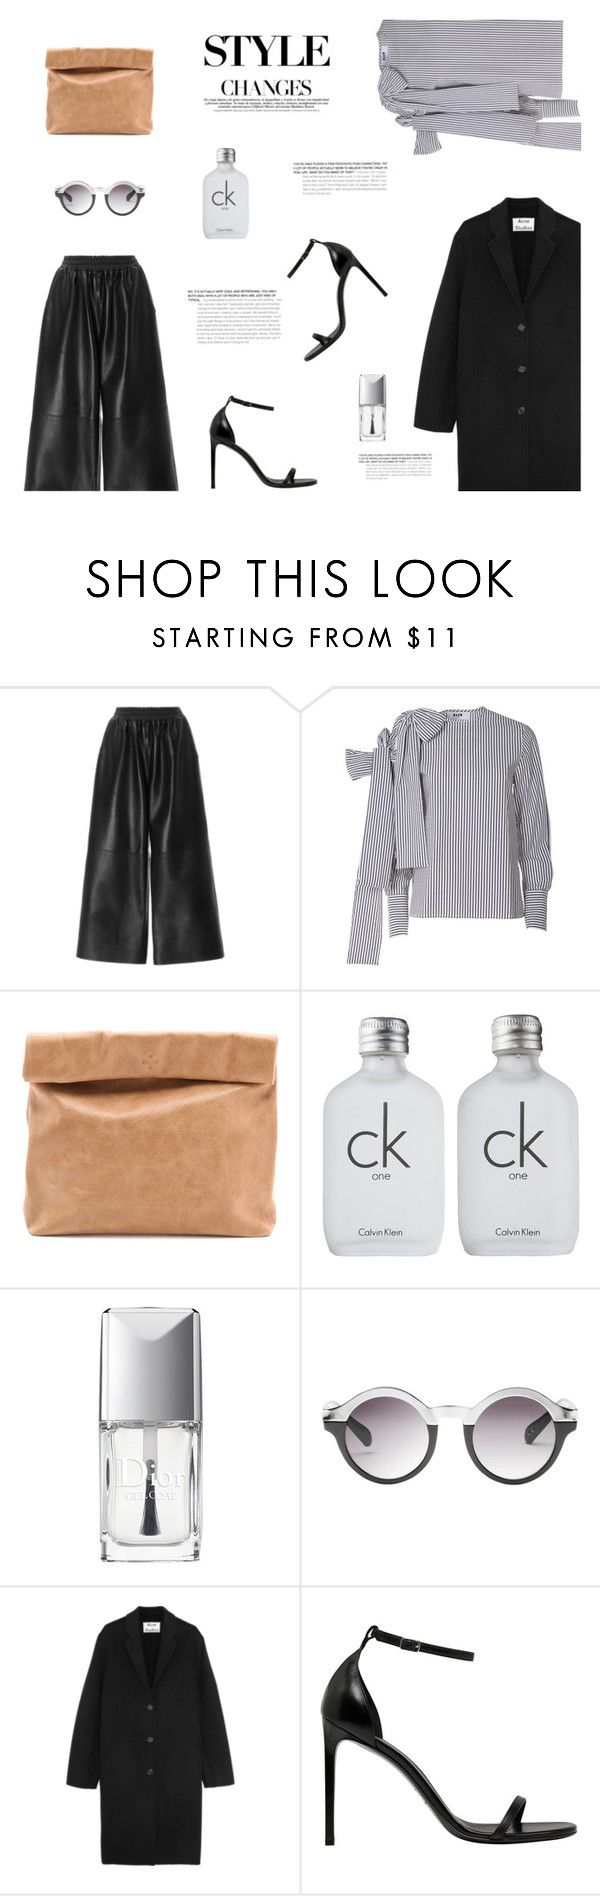 """""""LEATHER CULOTTES"""" by canvas-moods ❤ liked on Polyvore featuring Tome, MSGM, Marie Turnor, Calvin Klein, Christian Dior, Monki, Acne Studios, Yves Saint Laurent, TrickyTrend and Leather"""